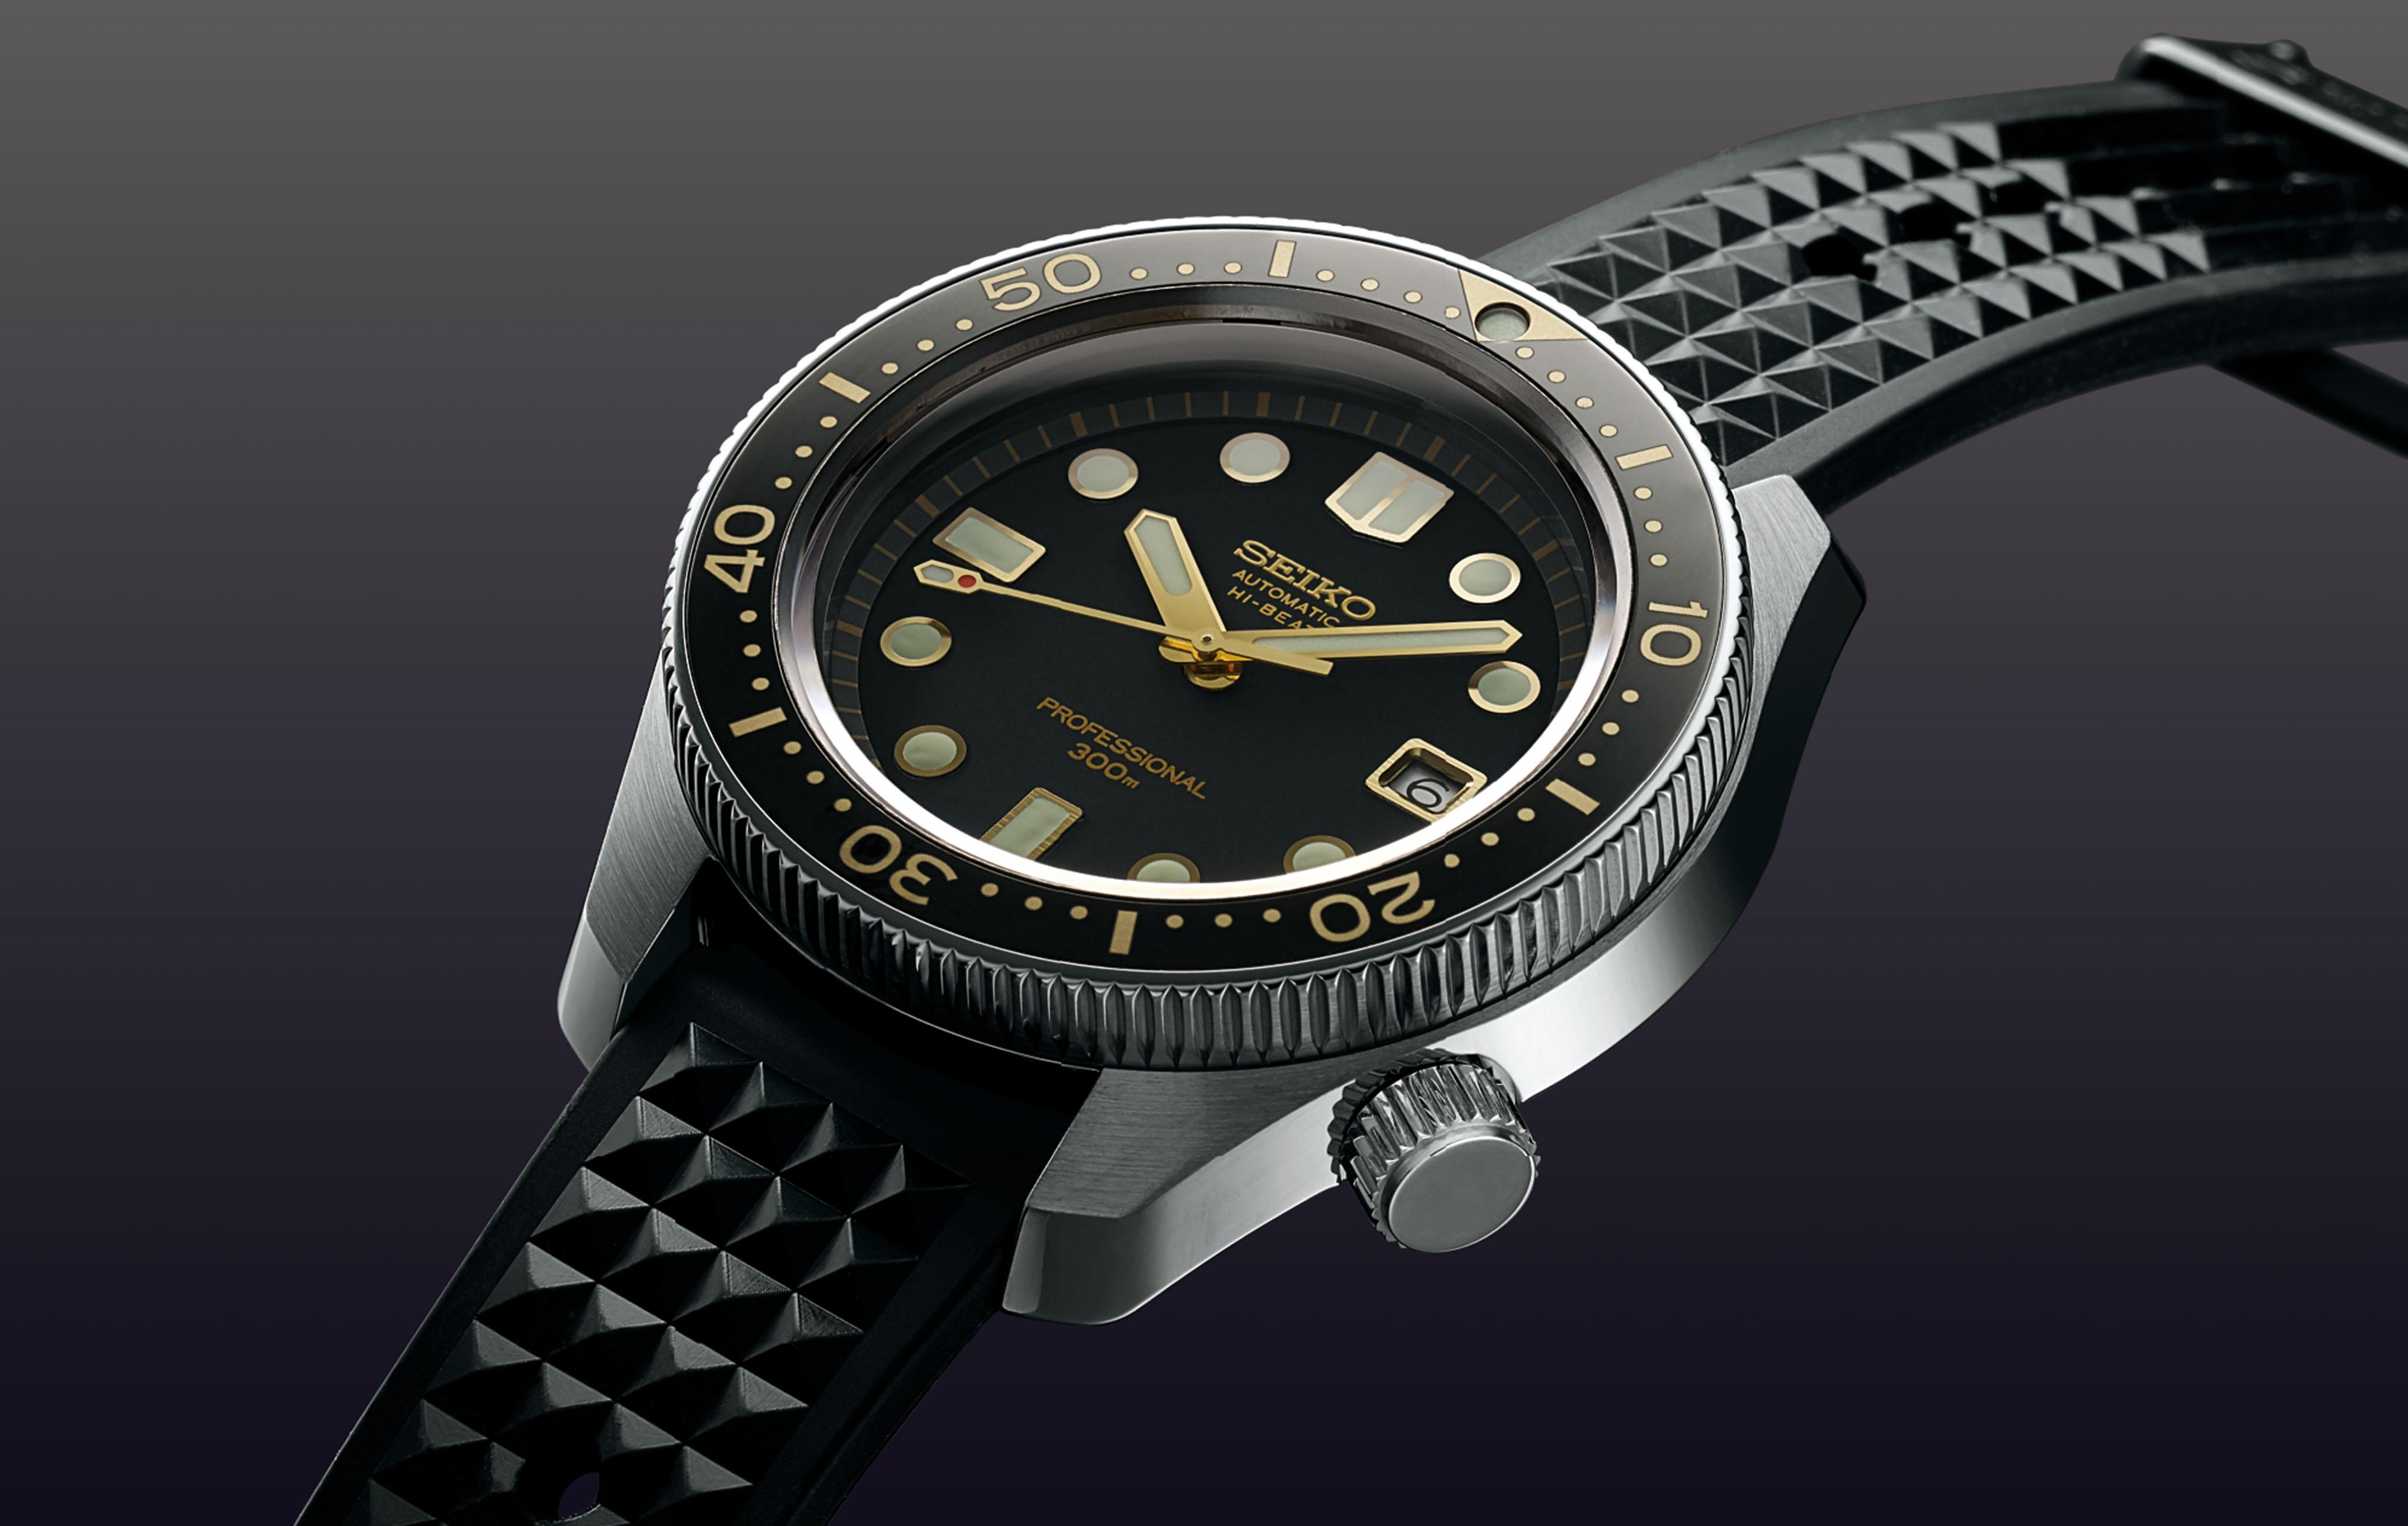 846c96d5d Seiko's expertise in diver's watches is celebrated in the new Prospex  collection